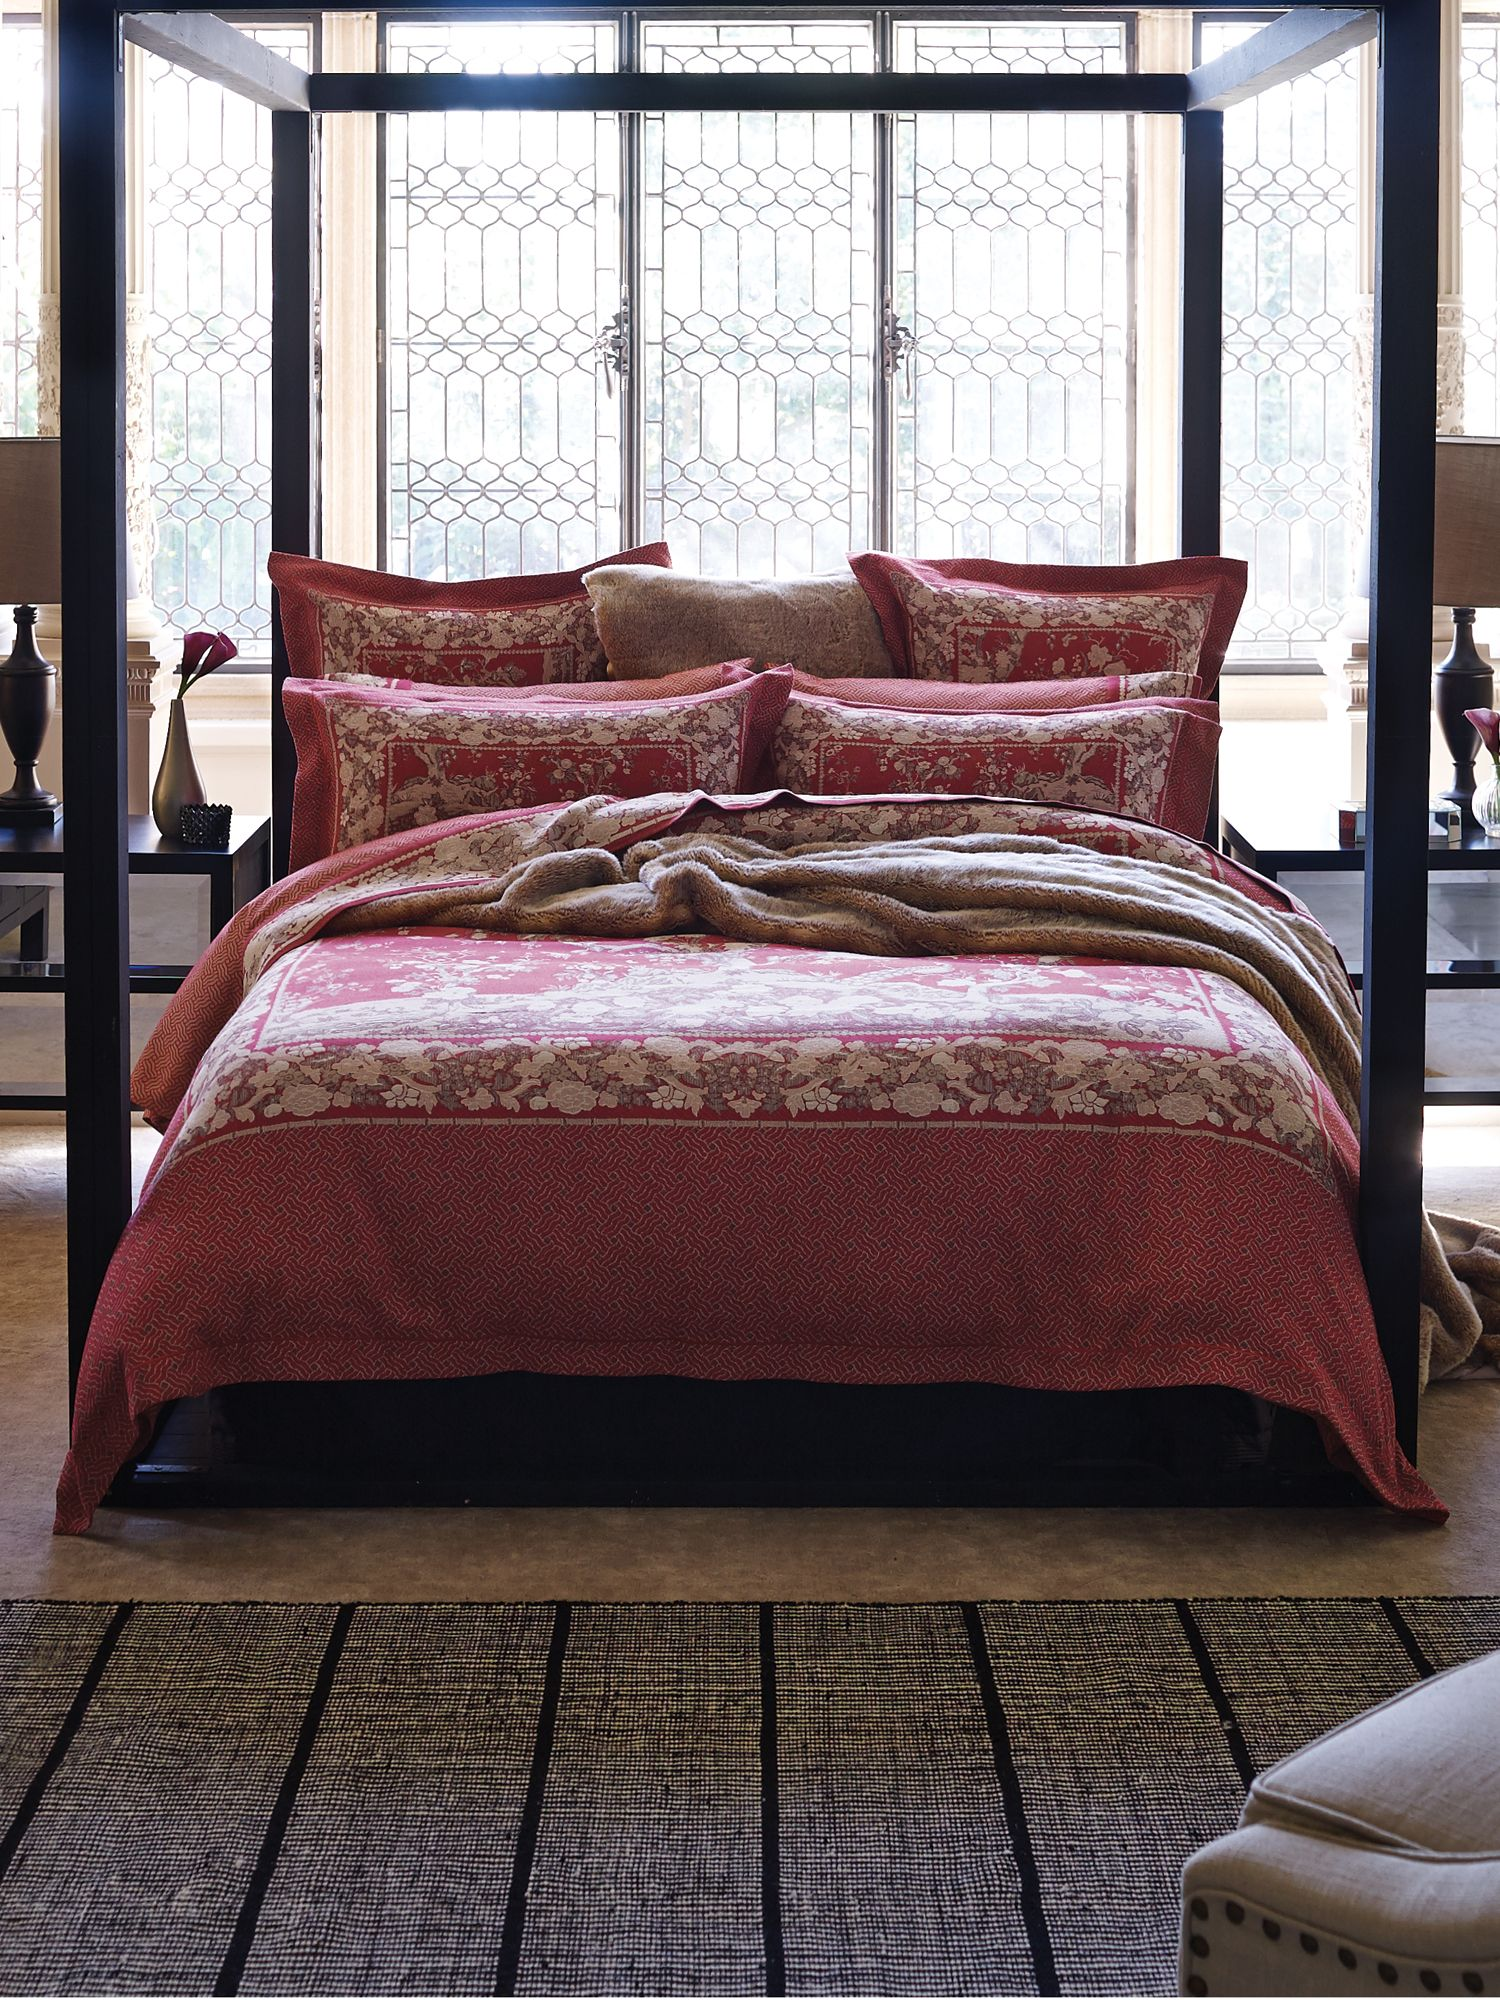 Severin phoemix bed linen